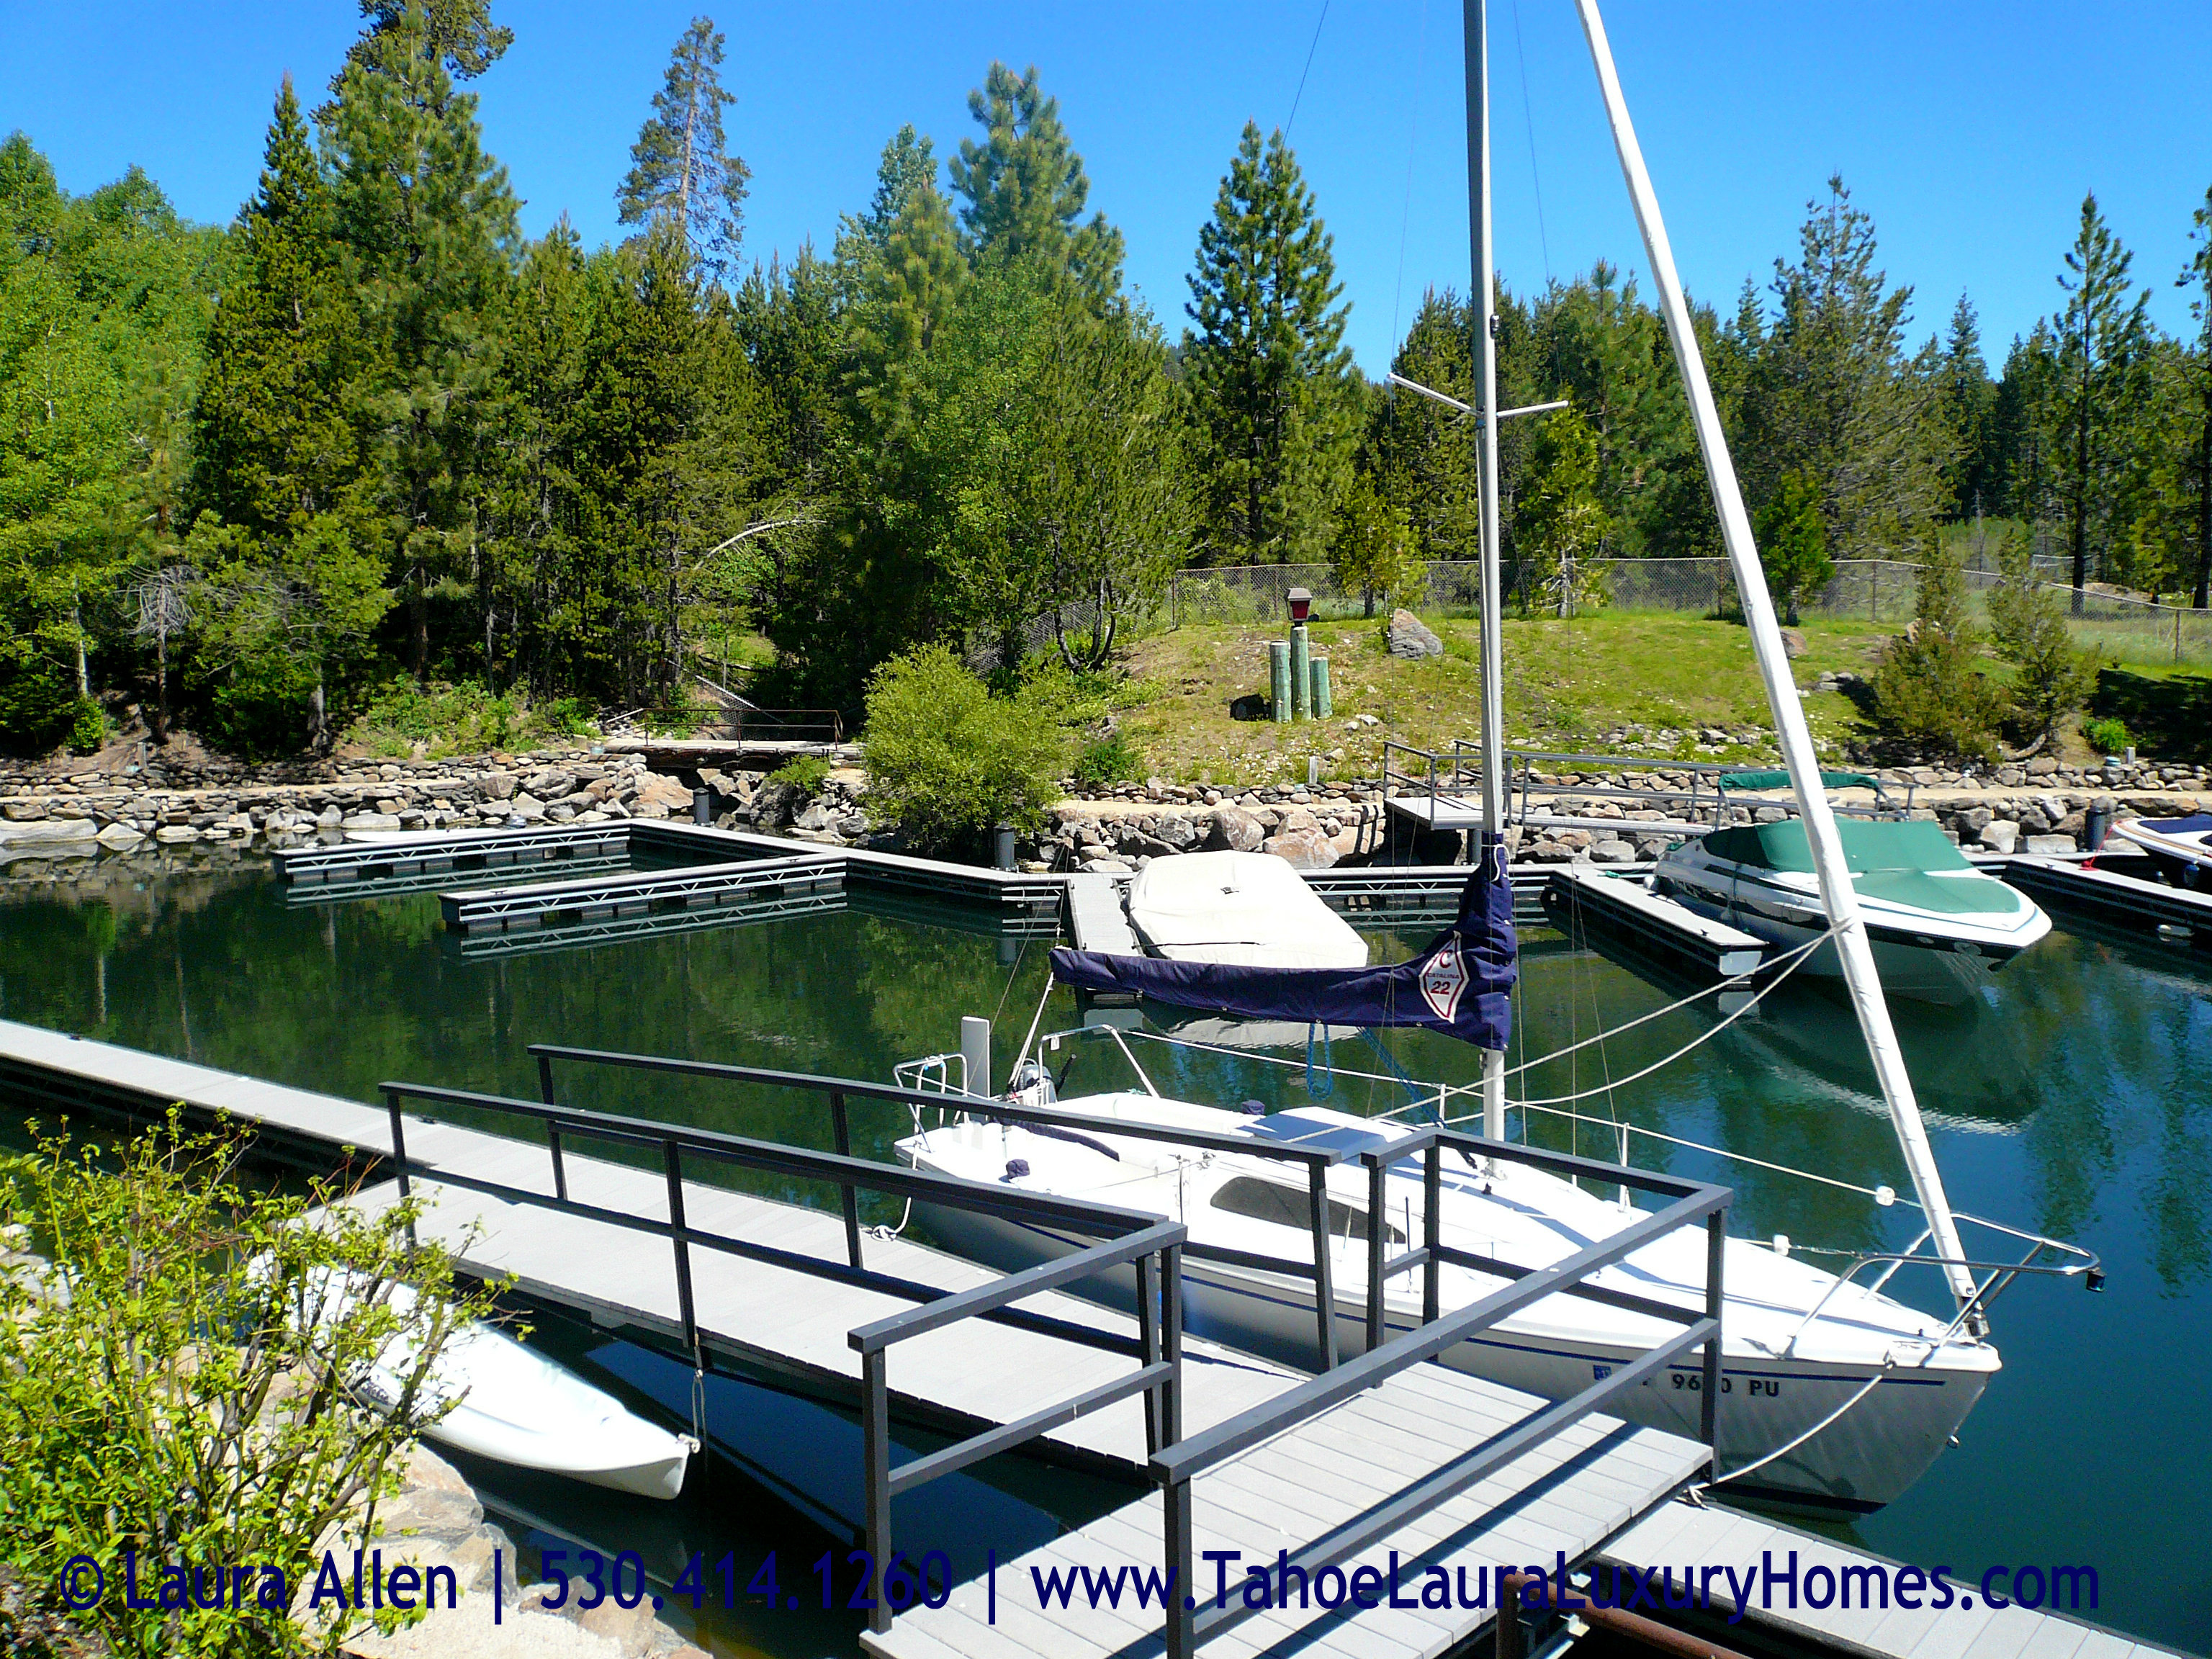 Star harbor real estate for sale www for Luxury homes for sale in lake tahoe